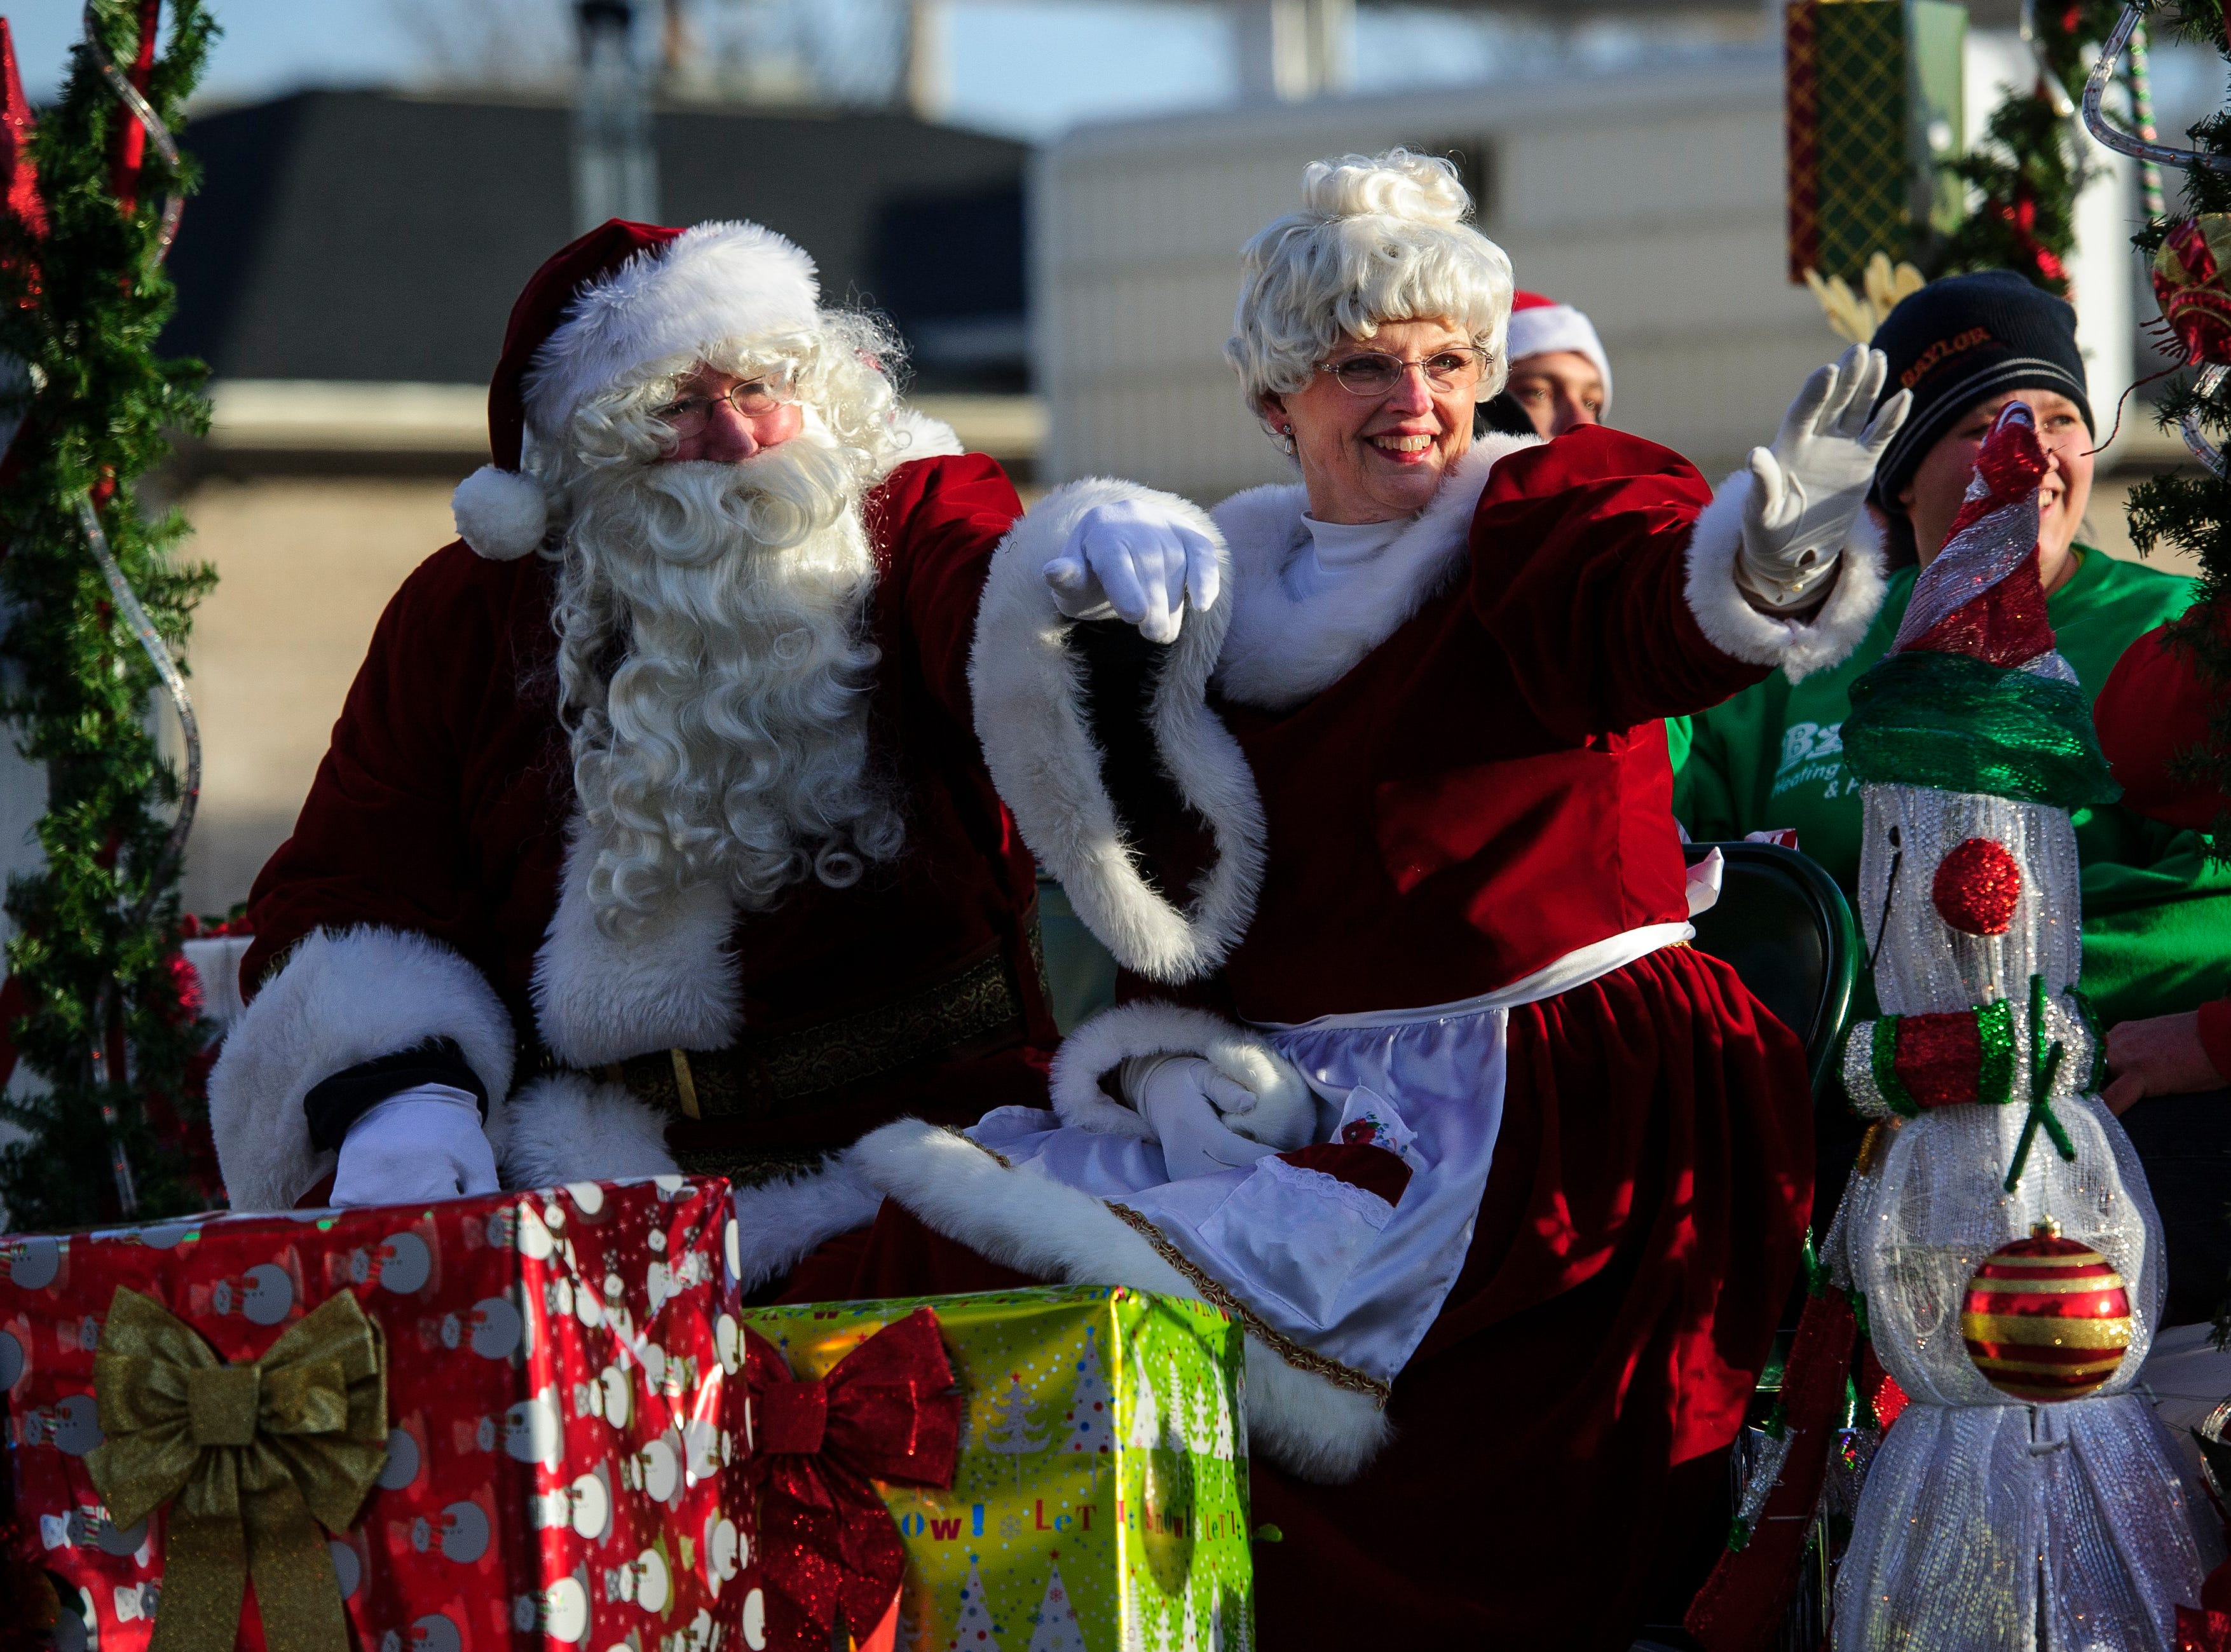 Santa and Mrs. Claus wave to bystanders from a float in the Christmas Parade at North Main Street in Evansville, Ind., on Sunday, November 24, 2013.